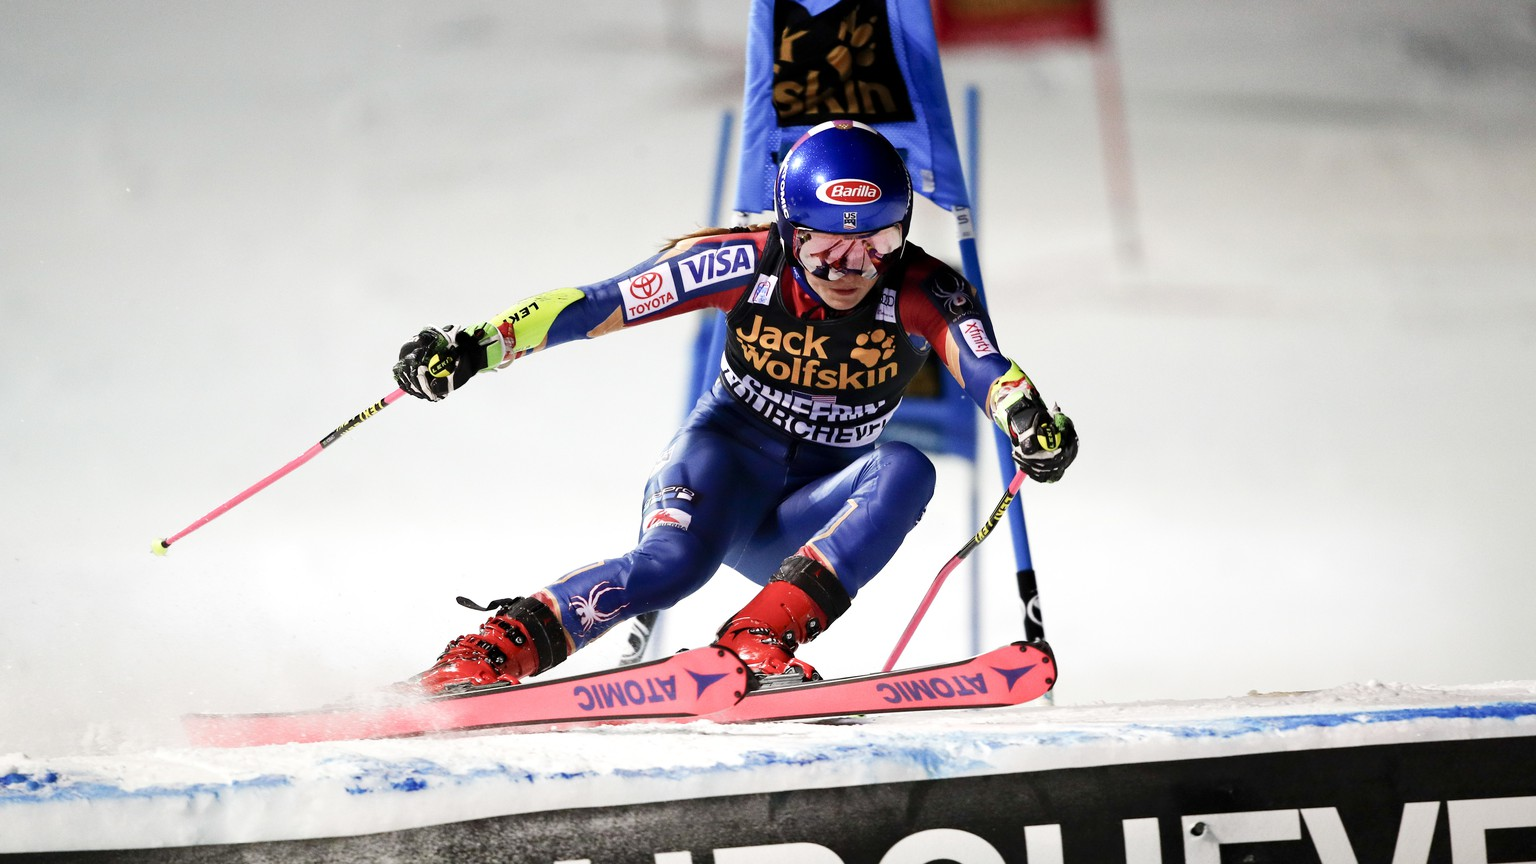 United States' Mikaela Shiffrin competes during an alpine ski, women's World Cup parallel slalom in Courchevel, France, Wednesday, Dec. 20, 2017. (AP Photo/Gabriele Facciotti)